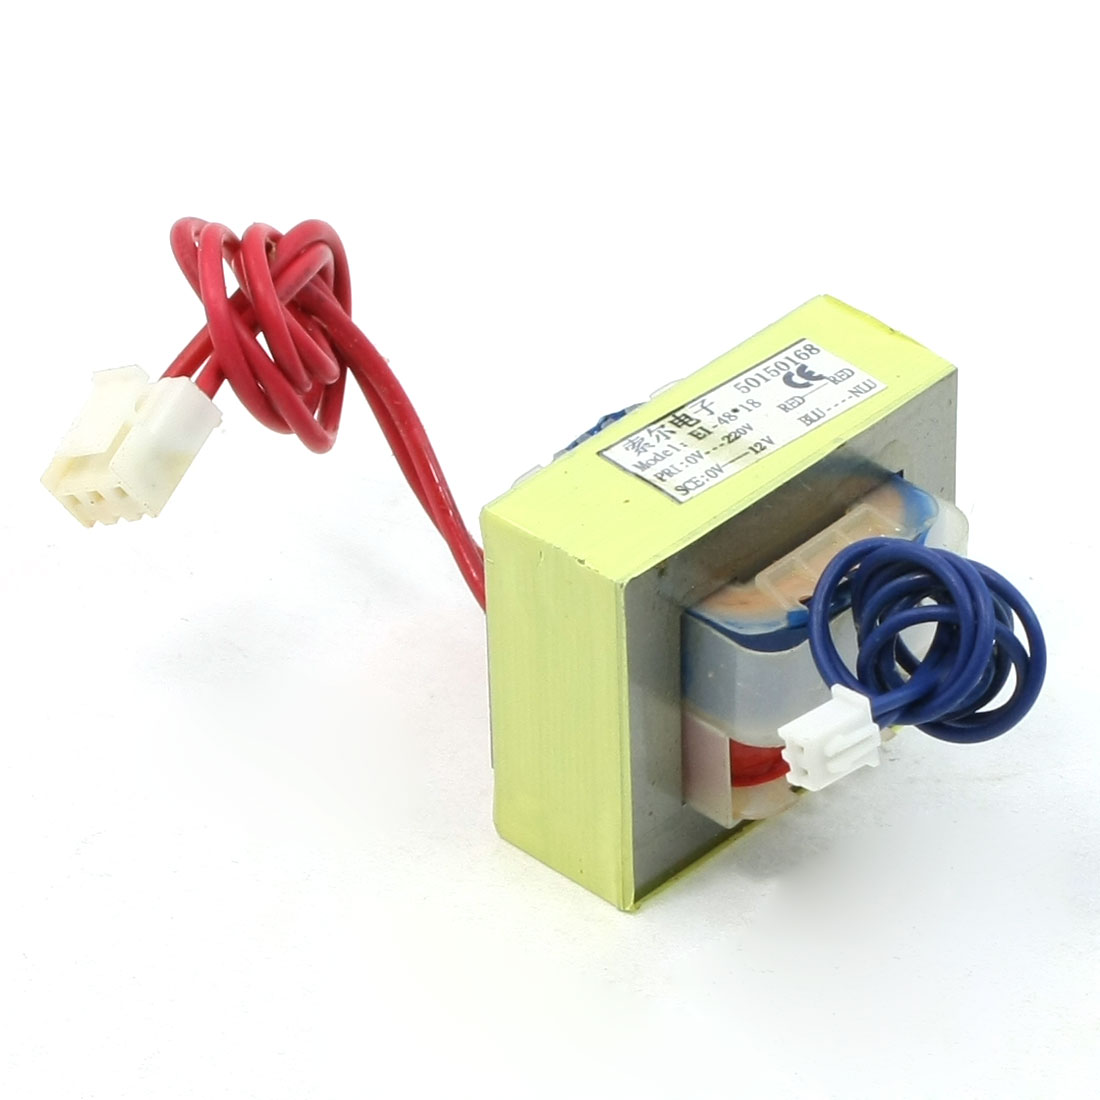 AC 220V 50Hz to DC 12V Open Frame EI Core Air Conditioner Power Transformer